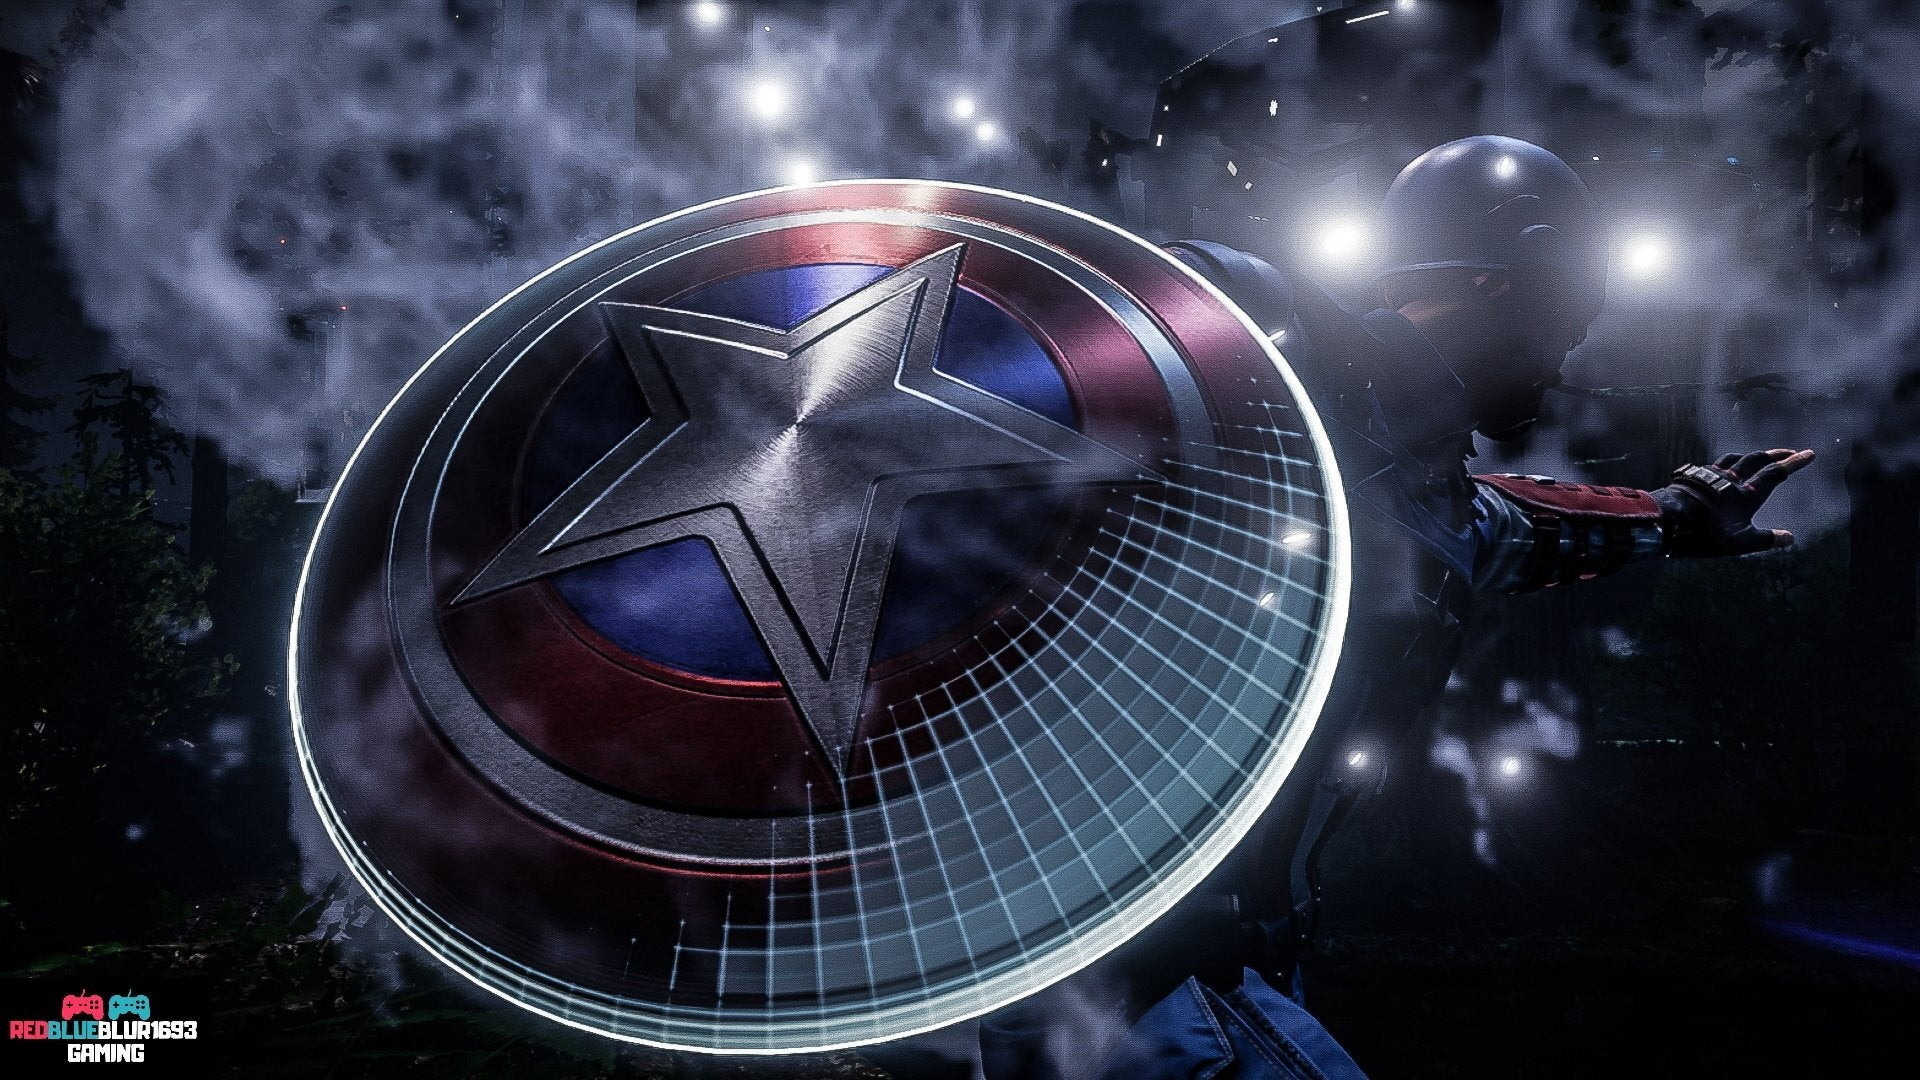 A close-up of Captain America's shield with circular stripes and a star emblazoned in the center